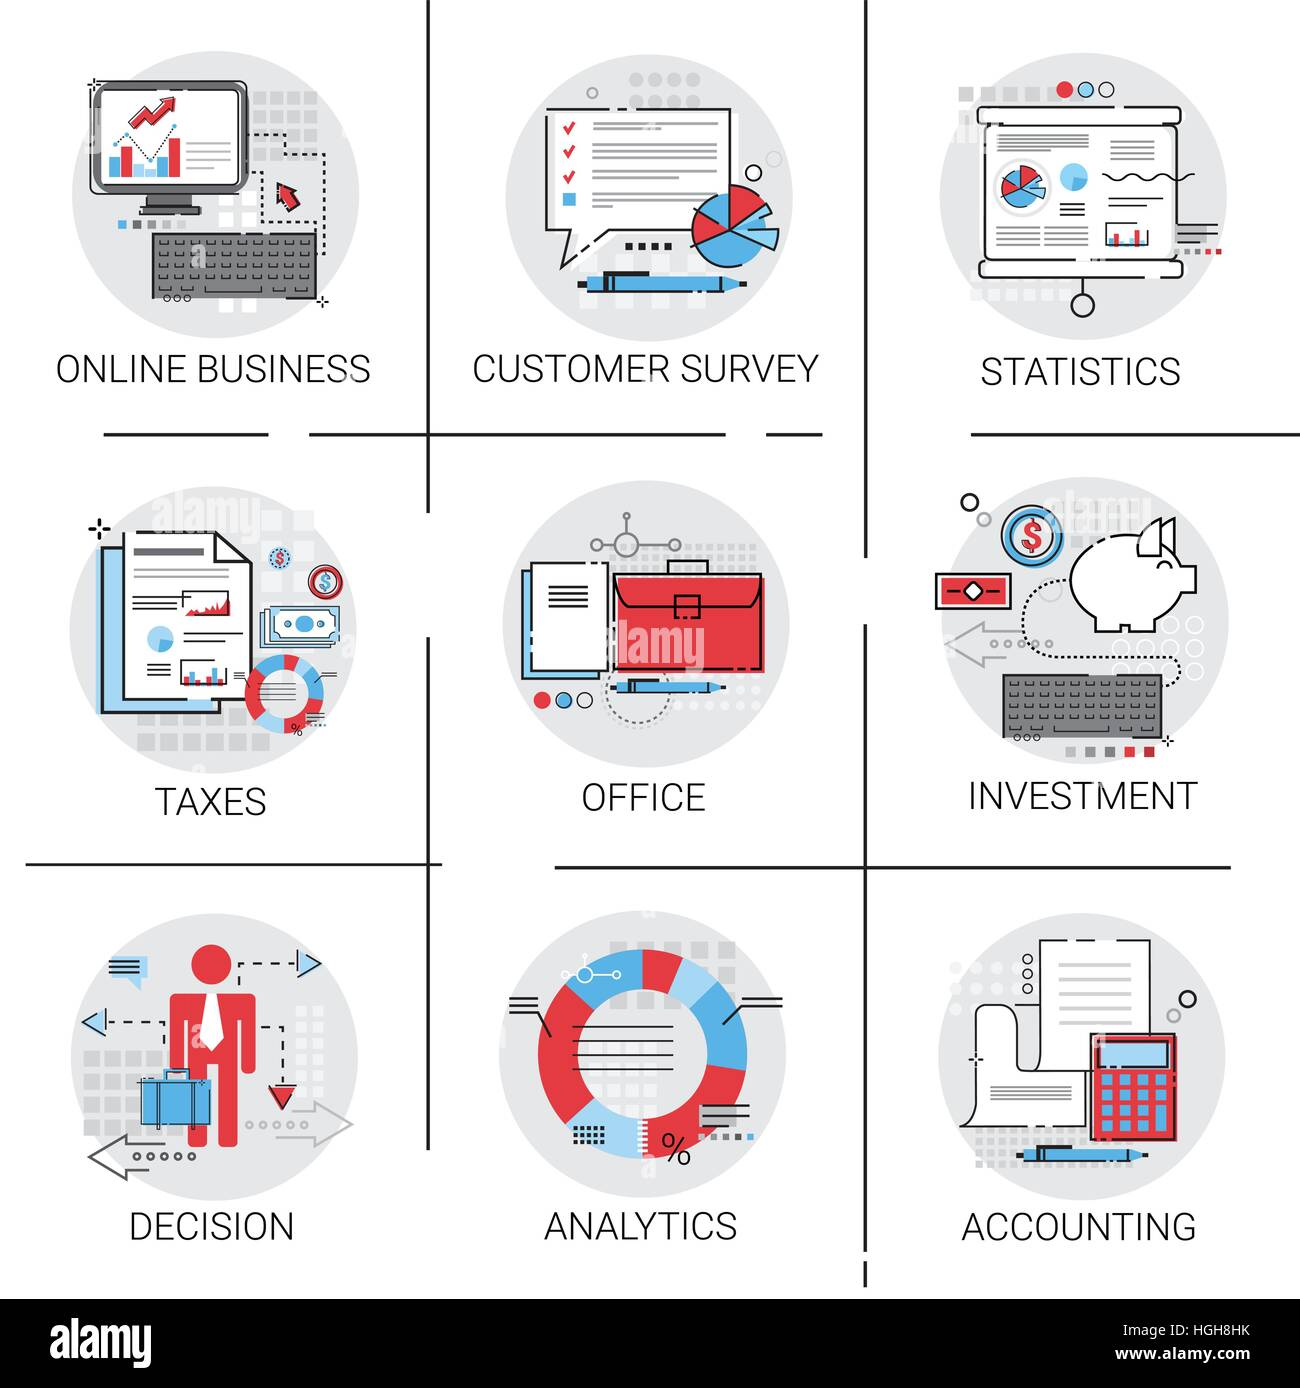 hight resolution of online business analysis statistics finance diagram office work icon set